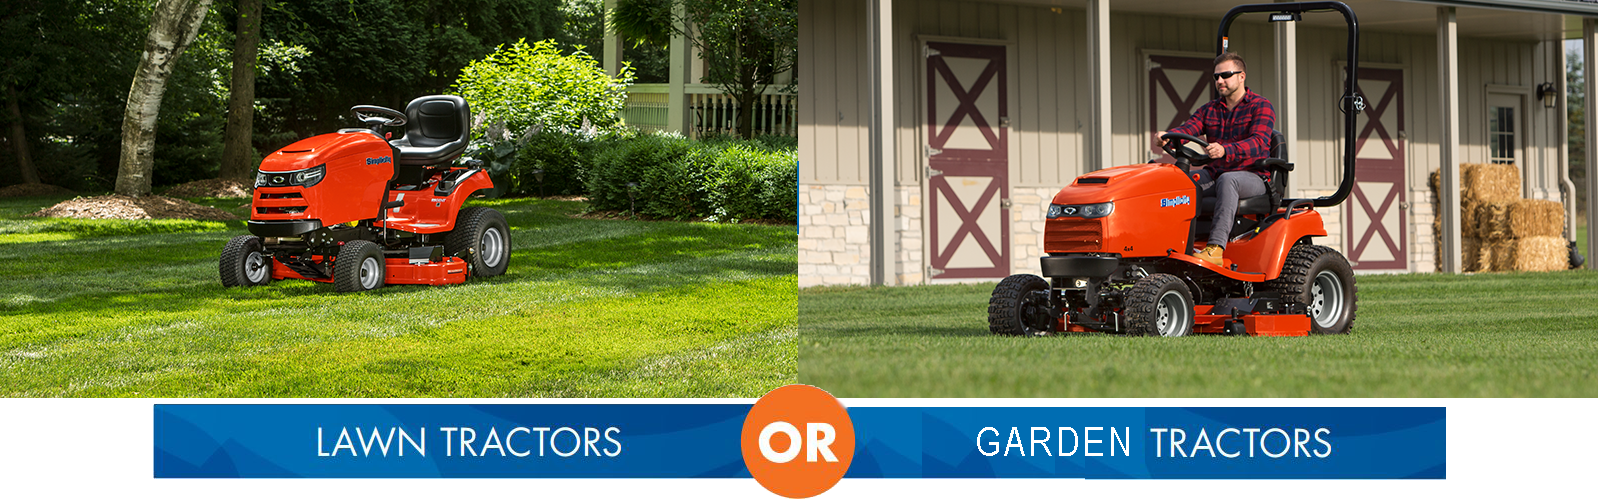 Simplicity regent lawn tractor versus a Simplicity Legacy garden tractor with attachments